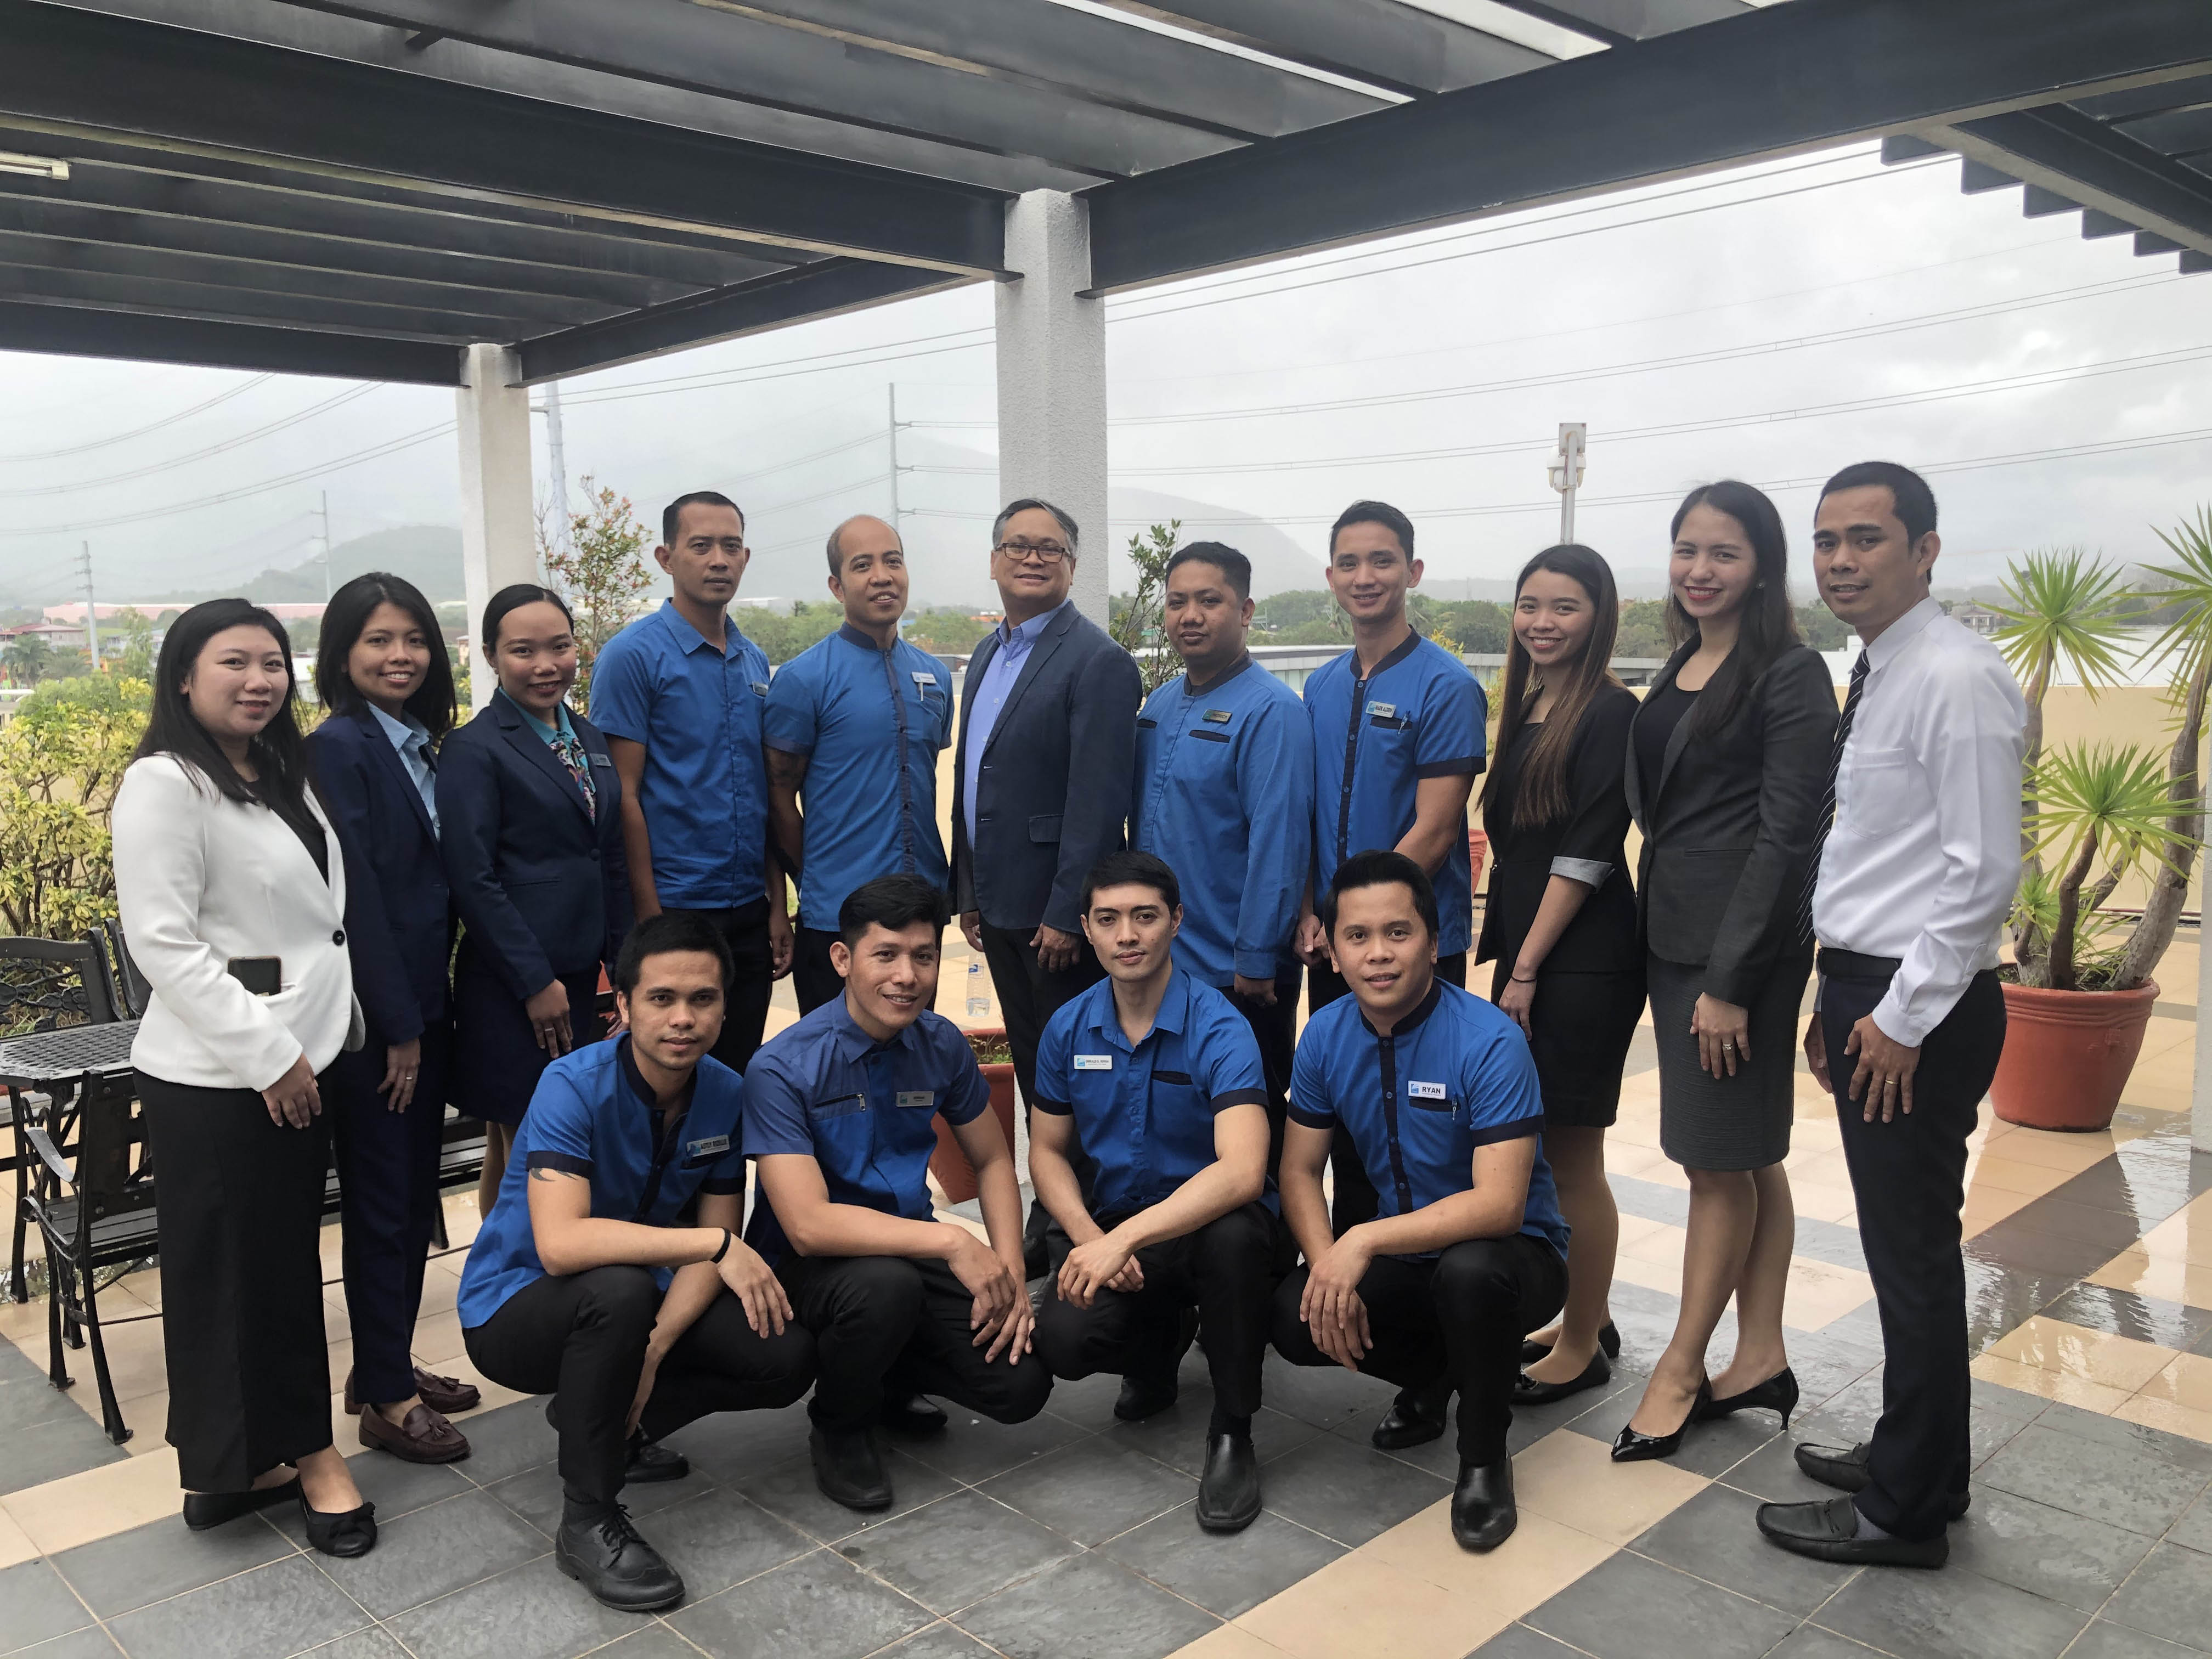 Meet the Team of SanTomas Suites